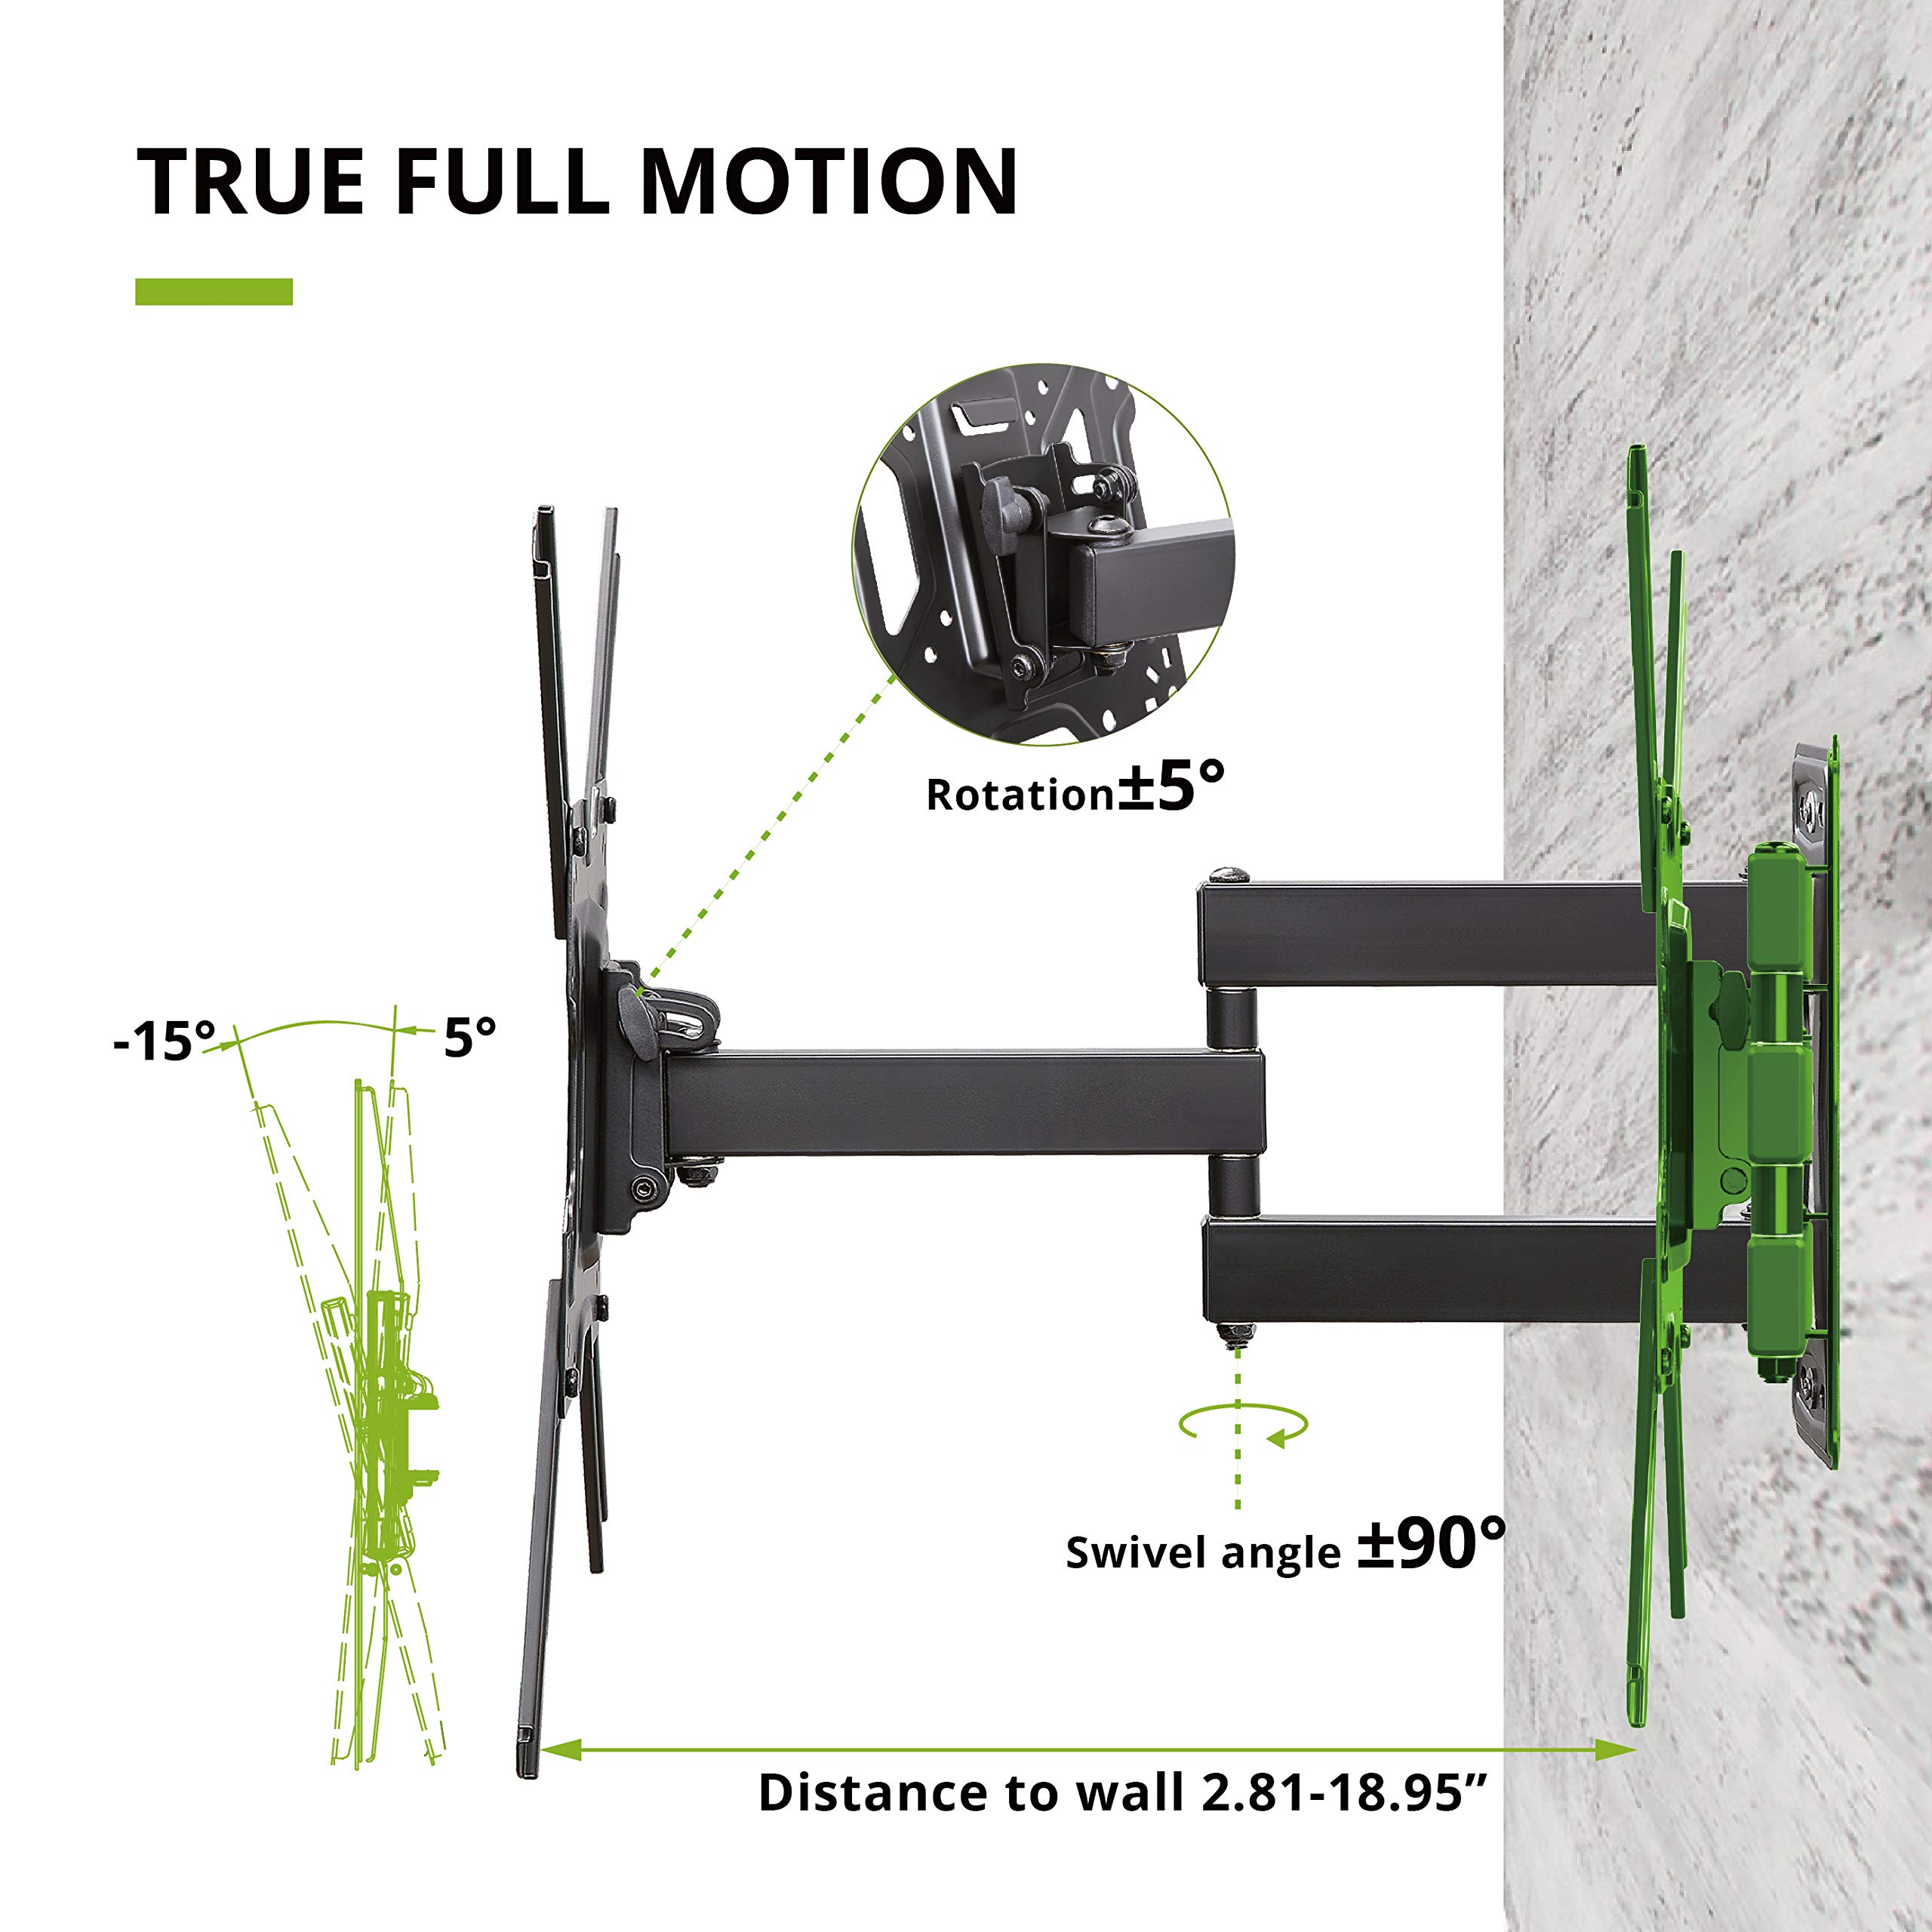 USX MOUNT Full Motion Swivel Articulating Tilt TV Wall Mount Bracket for 26-55'' LED, OLED, 4K TVs-Fit for 32, 40, 50 TV with VESA Up to 400x400mm-Weight Capacity Up to 60lbs by USX MOUNT (Image #3)